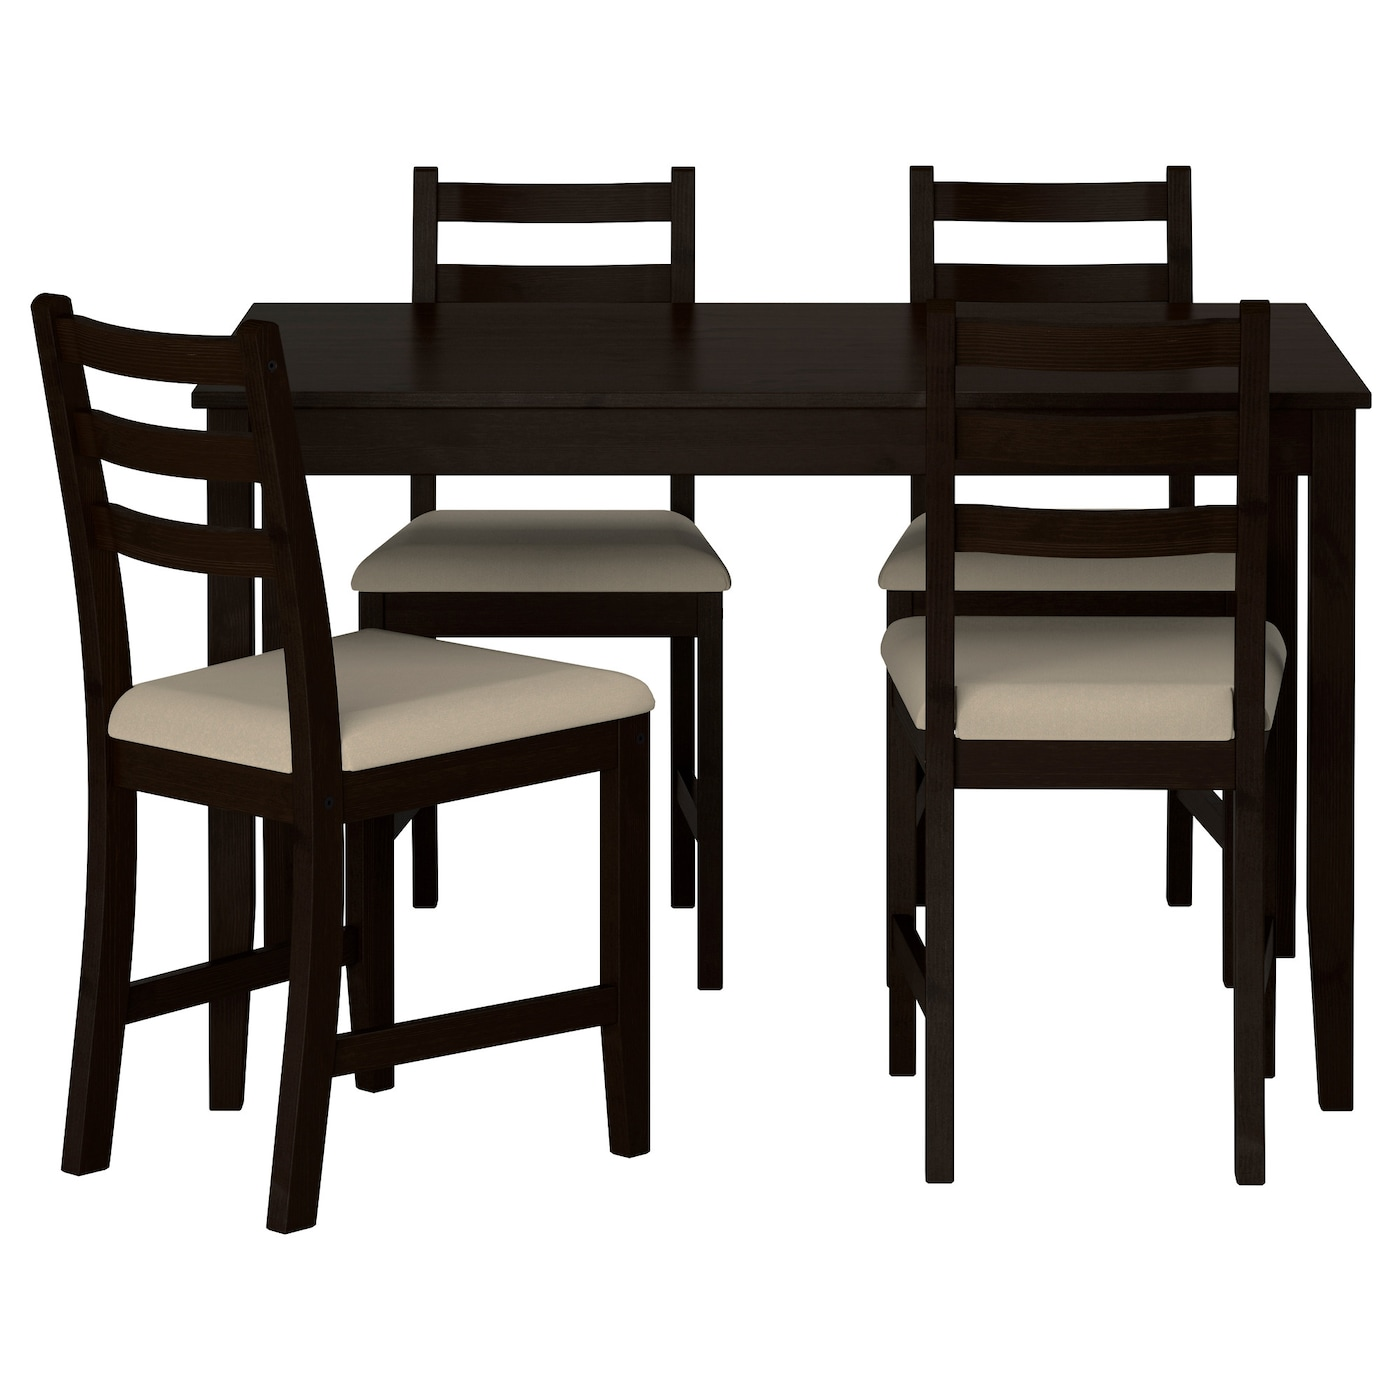 Lerhamn table and 4 chairs black brown ramna beige 118x74 for Set de table ikea